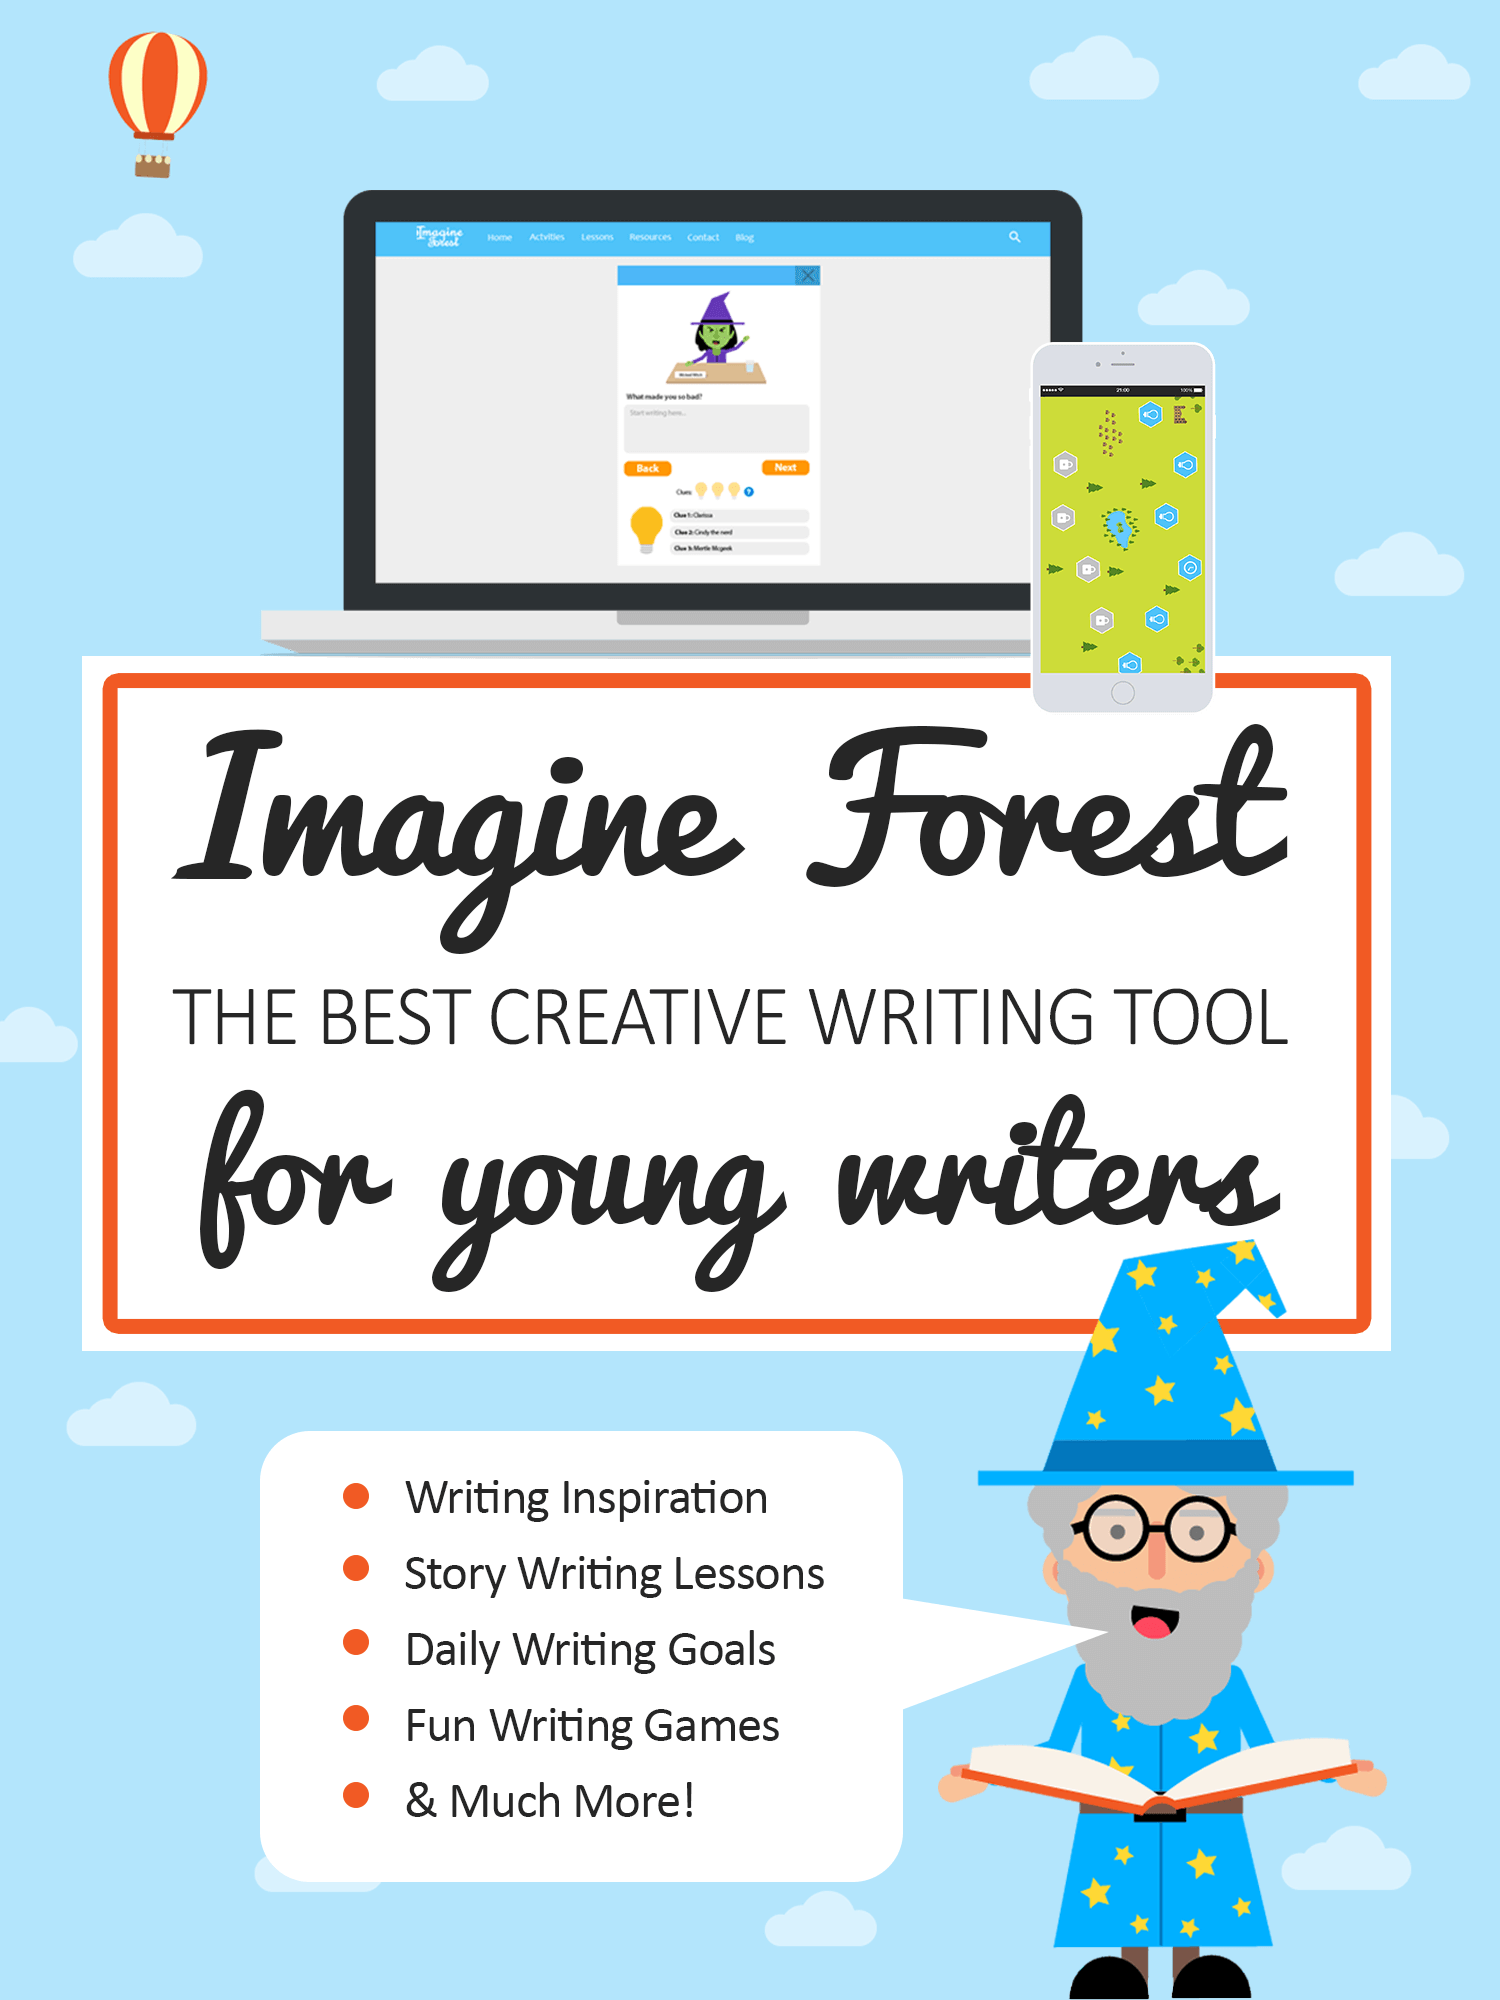 inspiration for creative writing Find and save ideas about creative writing inspiration on pinterest | see more ideas about creative writing, book writing tips and writing tips.